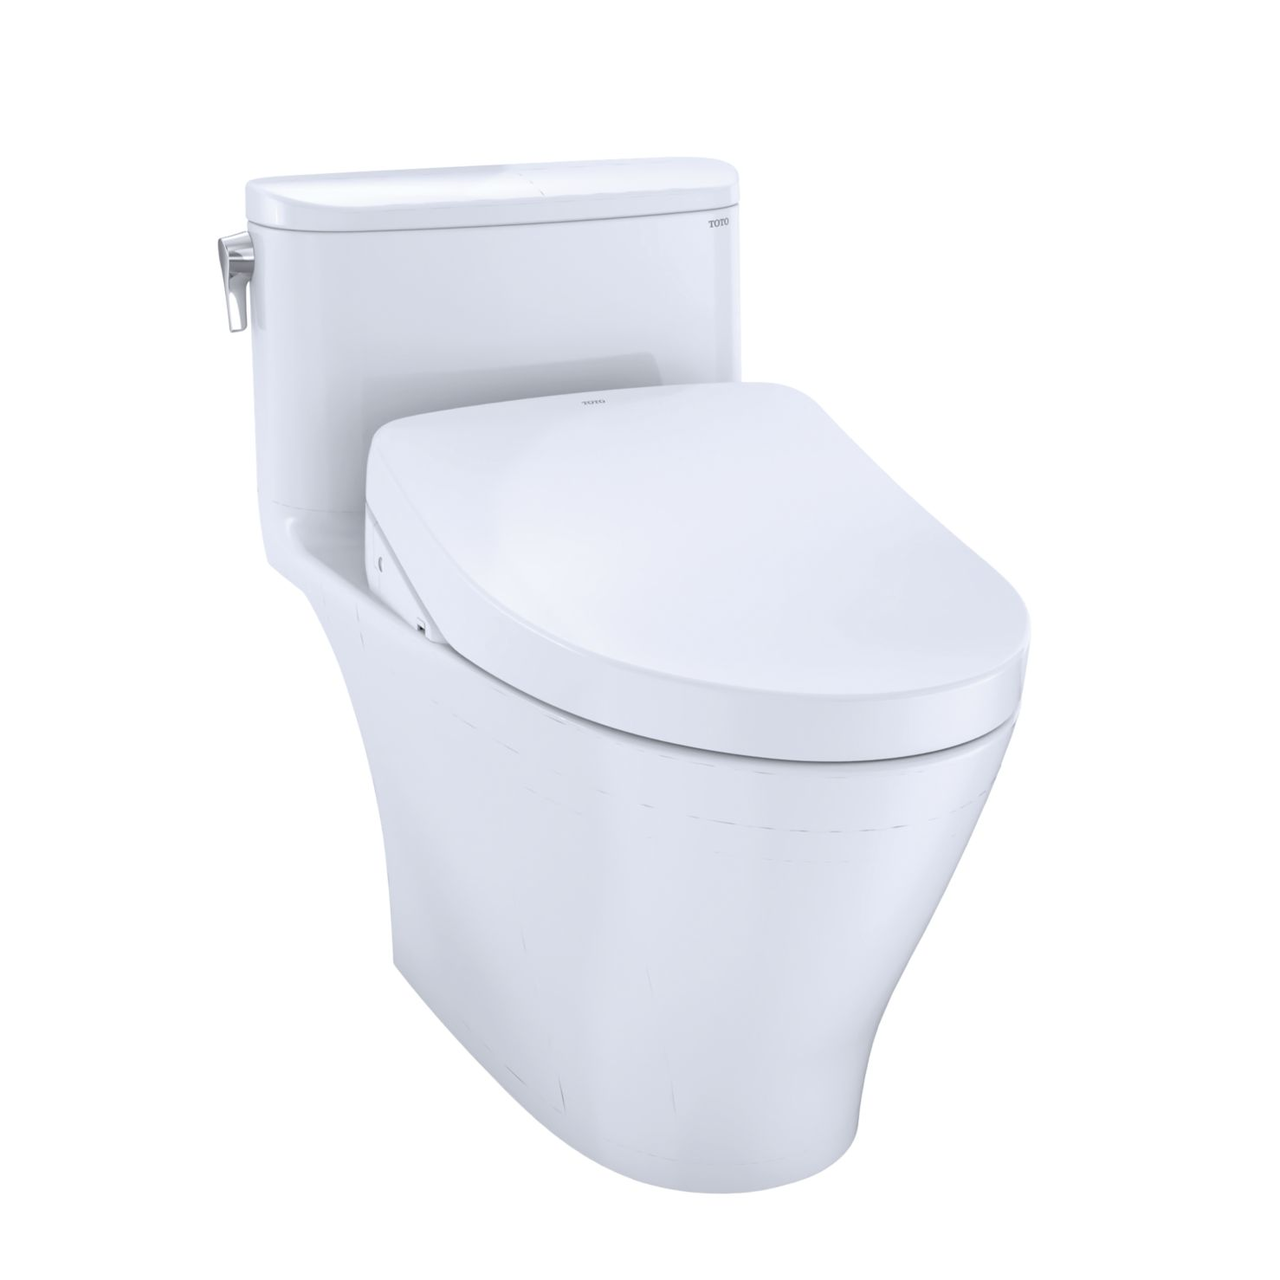 Fantastic Toto Nexus Washlet S500E One Piece Toilet And Bidet System 1 28 Gpf Machost Co Dining Chair Design Ideas Machostcouk